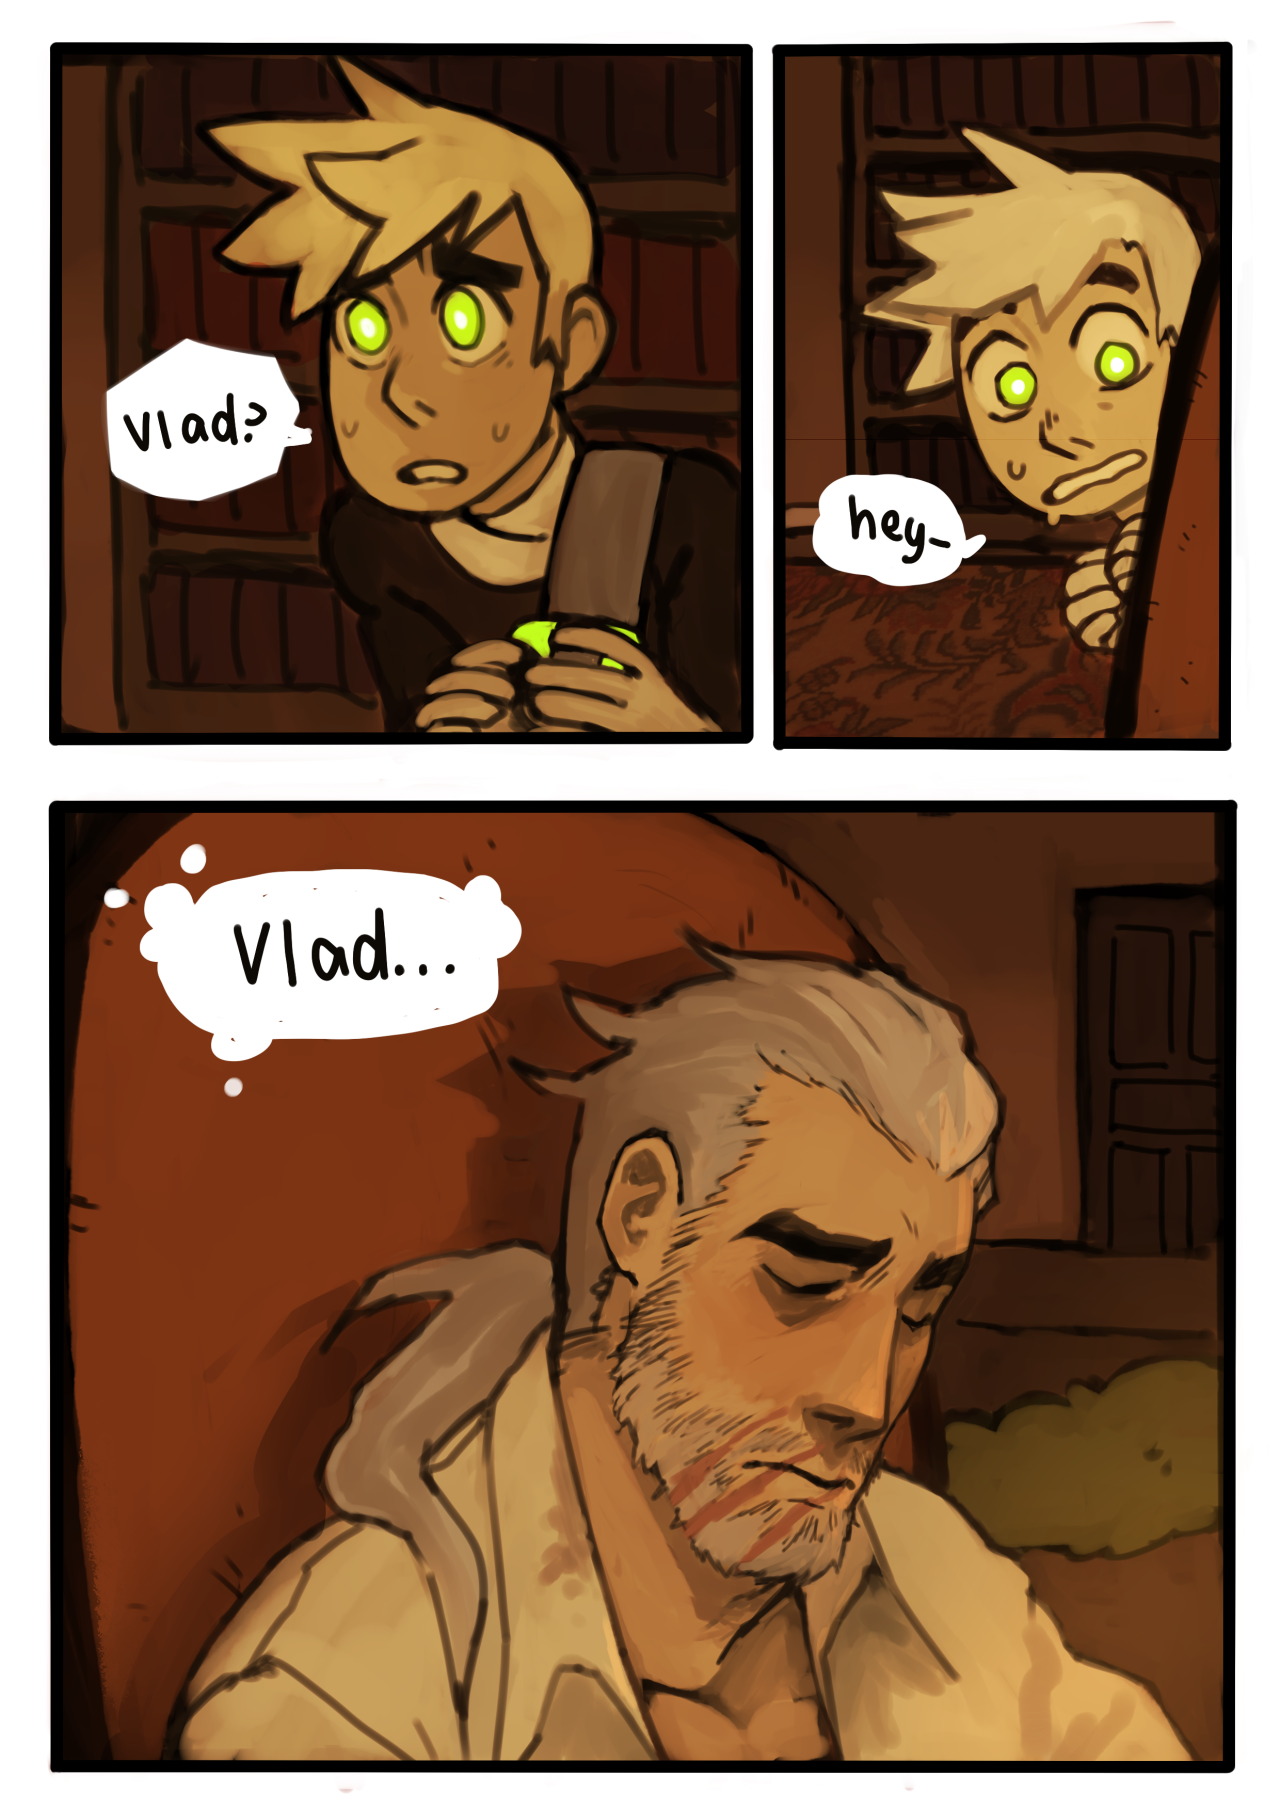 Page 78 [ TRUMPET NOISE ] FINALLY AFTER WAY TOO LONG, i GET TO DRAW VLAD IN THE DANG COMIC AGAIN lookin' a bit crumpled there fam